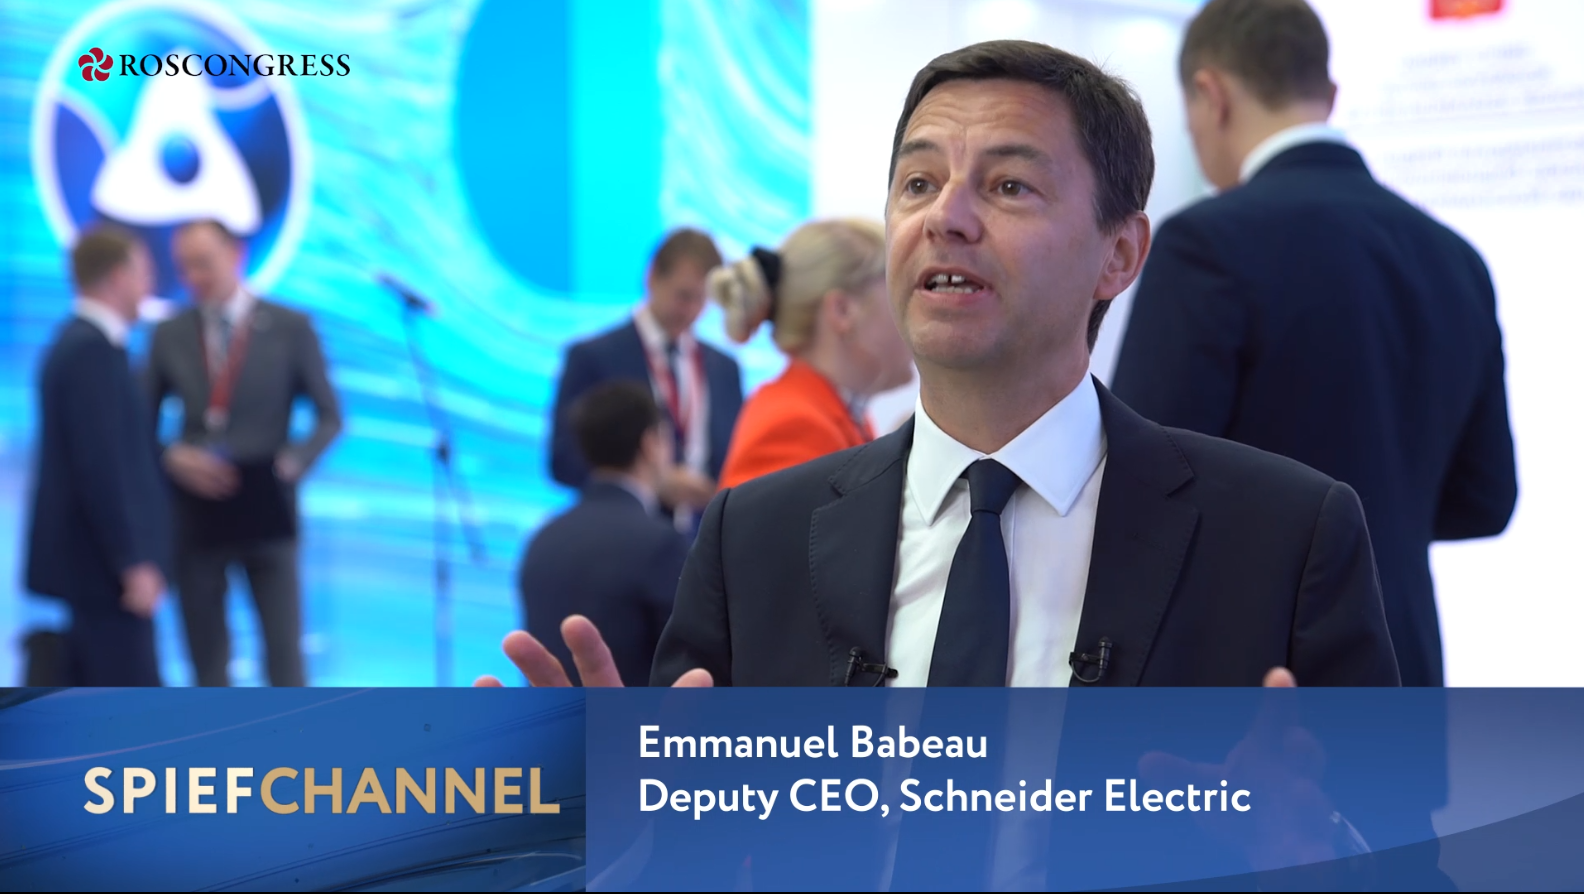 Emmanuel Babeau, Deputy Chief Executive Officer in charge of Finance and Legal Affairs, Schneider Electric